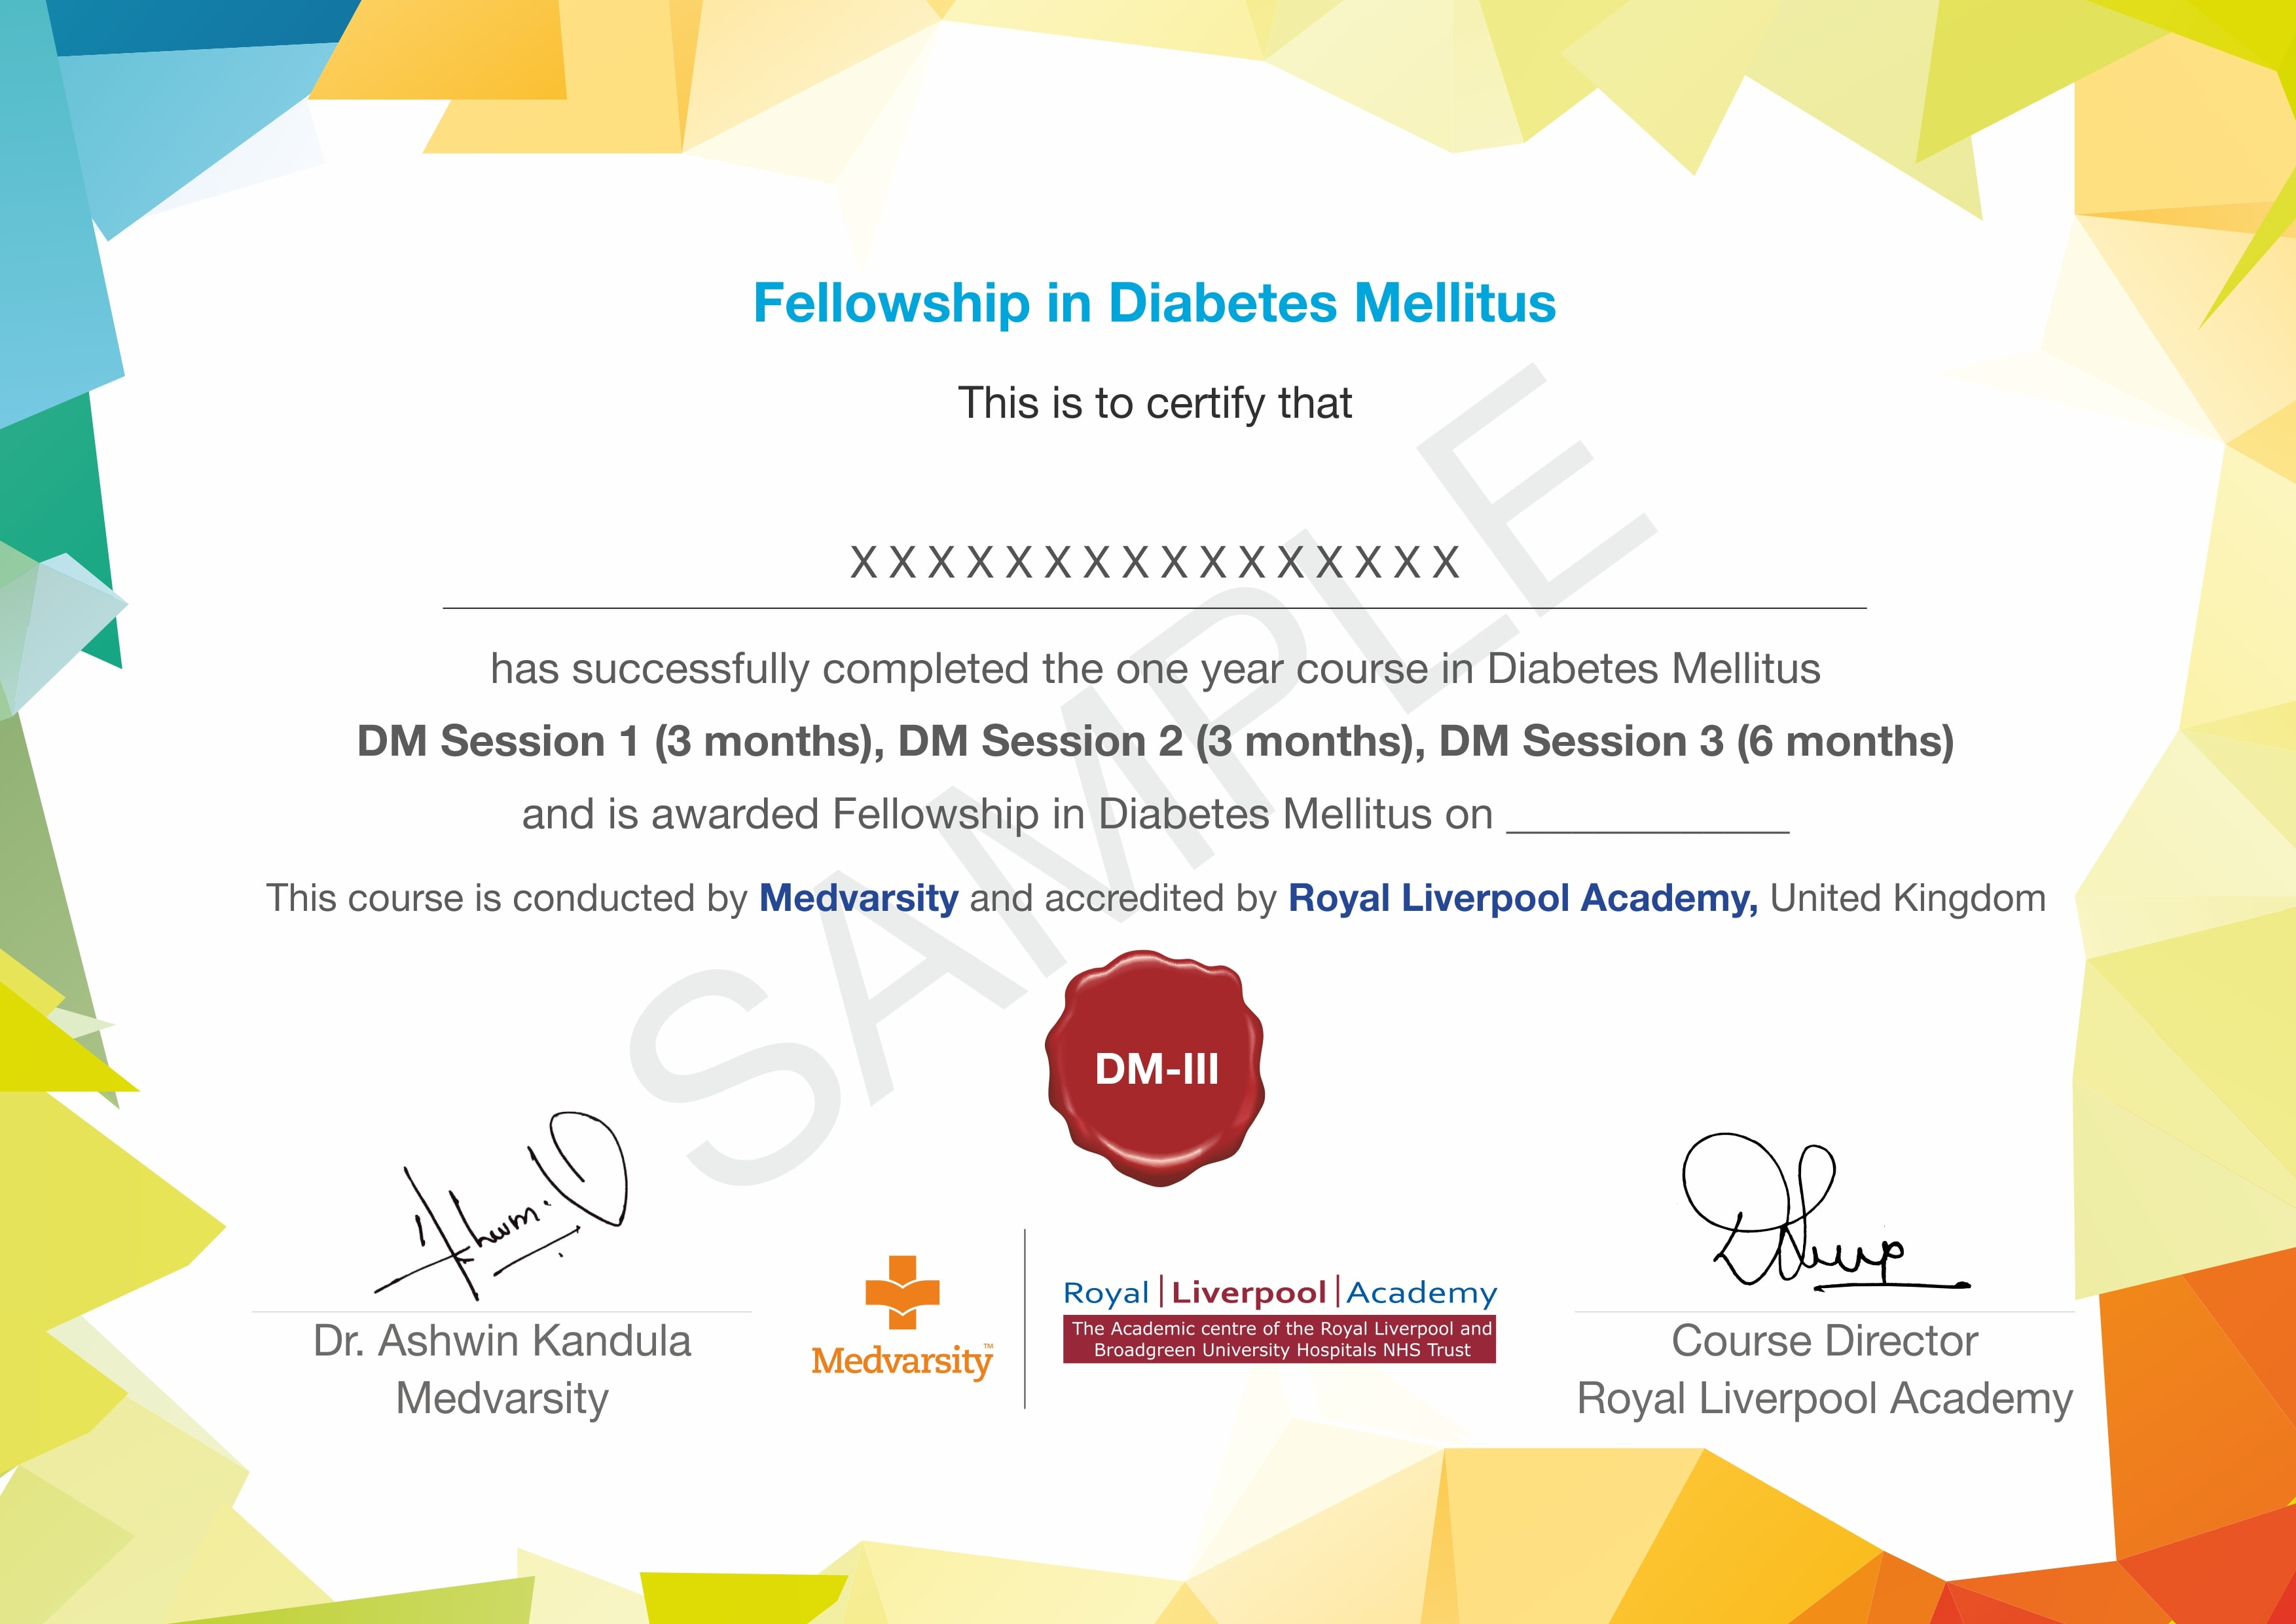 Fellowship in Diabetes Mellitus course offered by Medvarsity